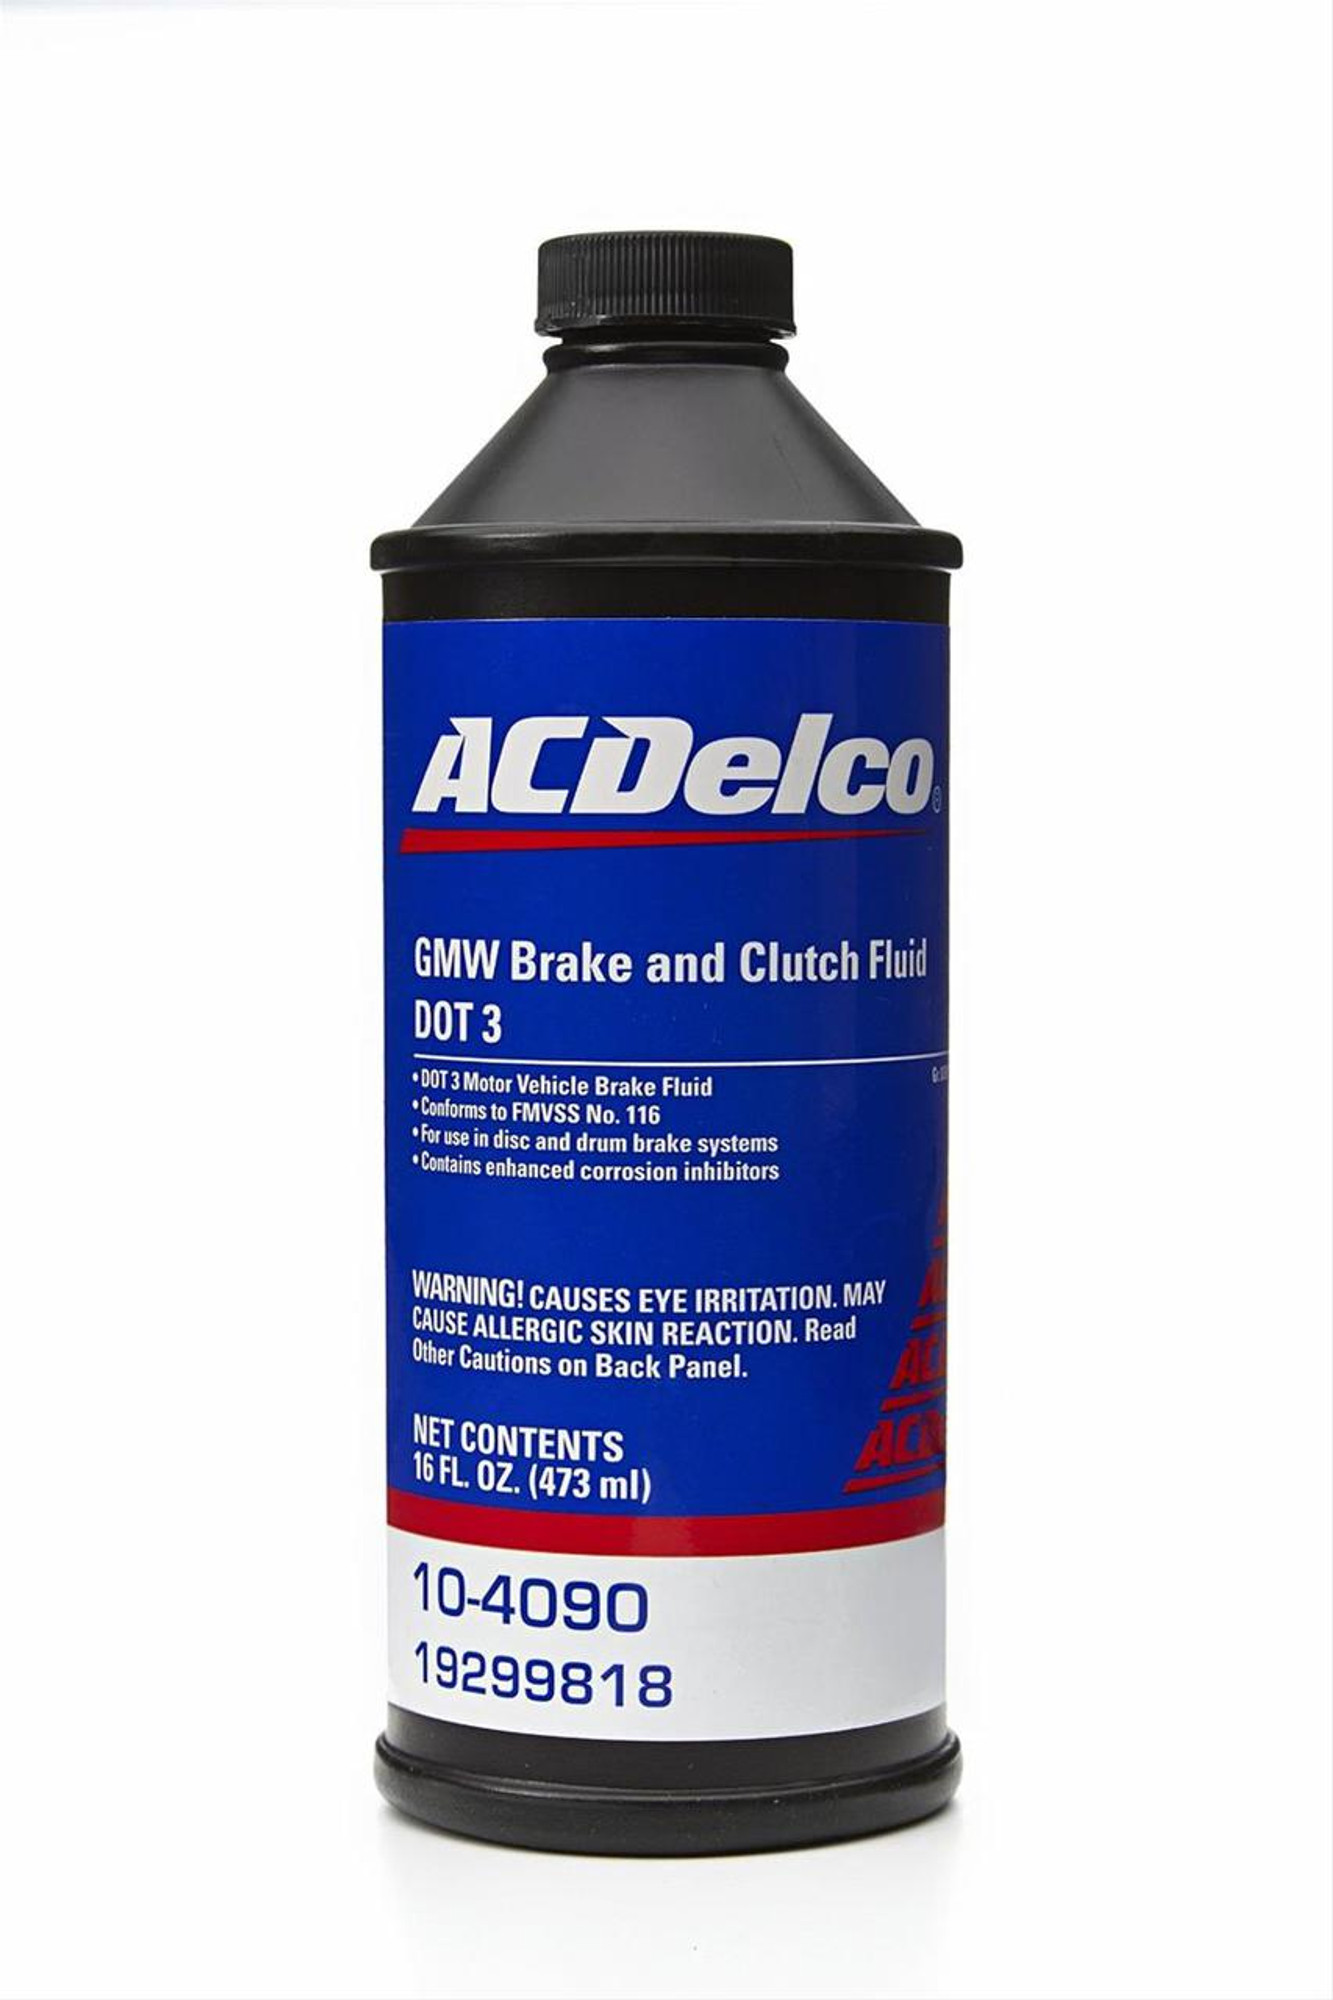 Gm Ac Delco Dot 4 Brake Clutch Fluid 8oz Tick